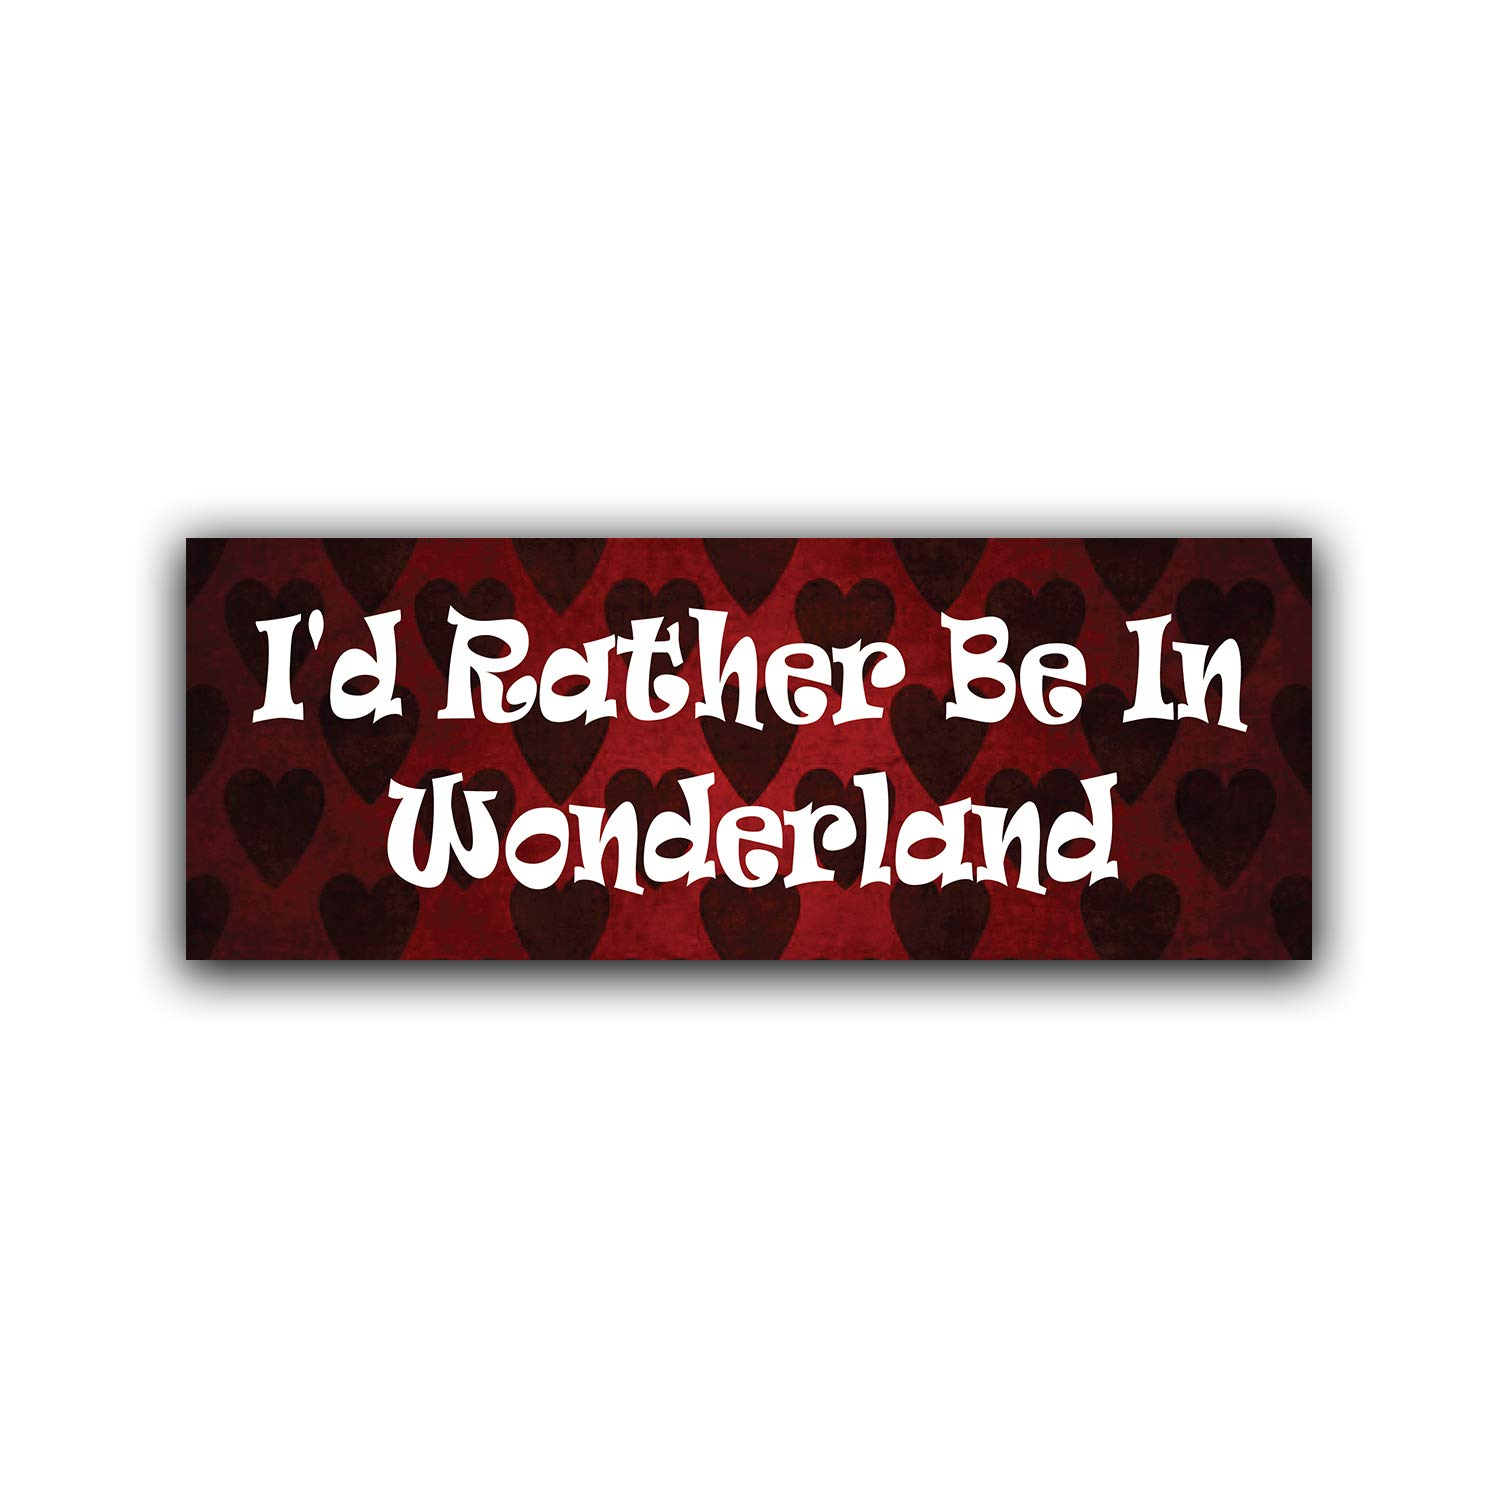 One 8.25 Inch Decal MKS0787 Car Truck Van SUV Window Wall Cup Laptop More Shiz Id Rather Be in Wonderland Vinyl Decal Sticker